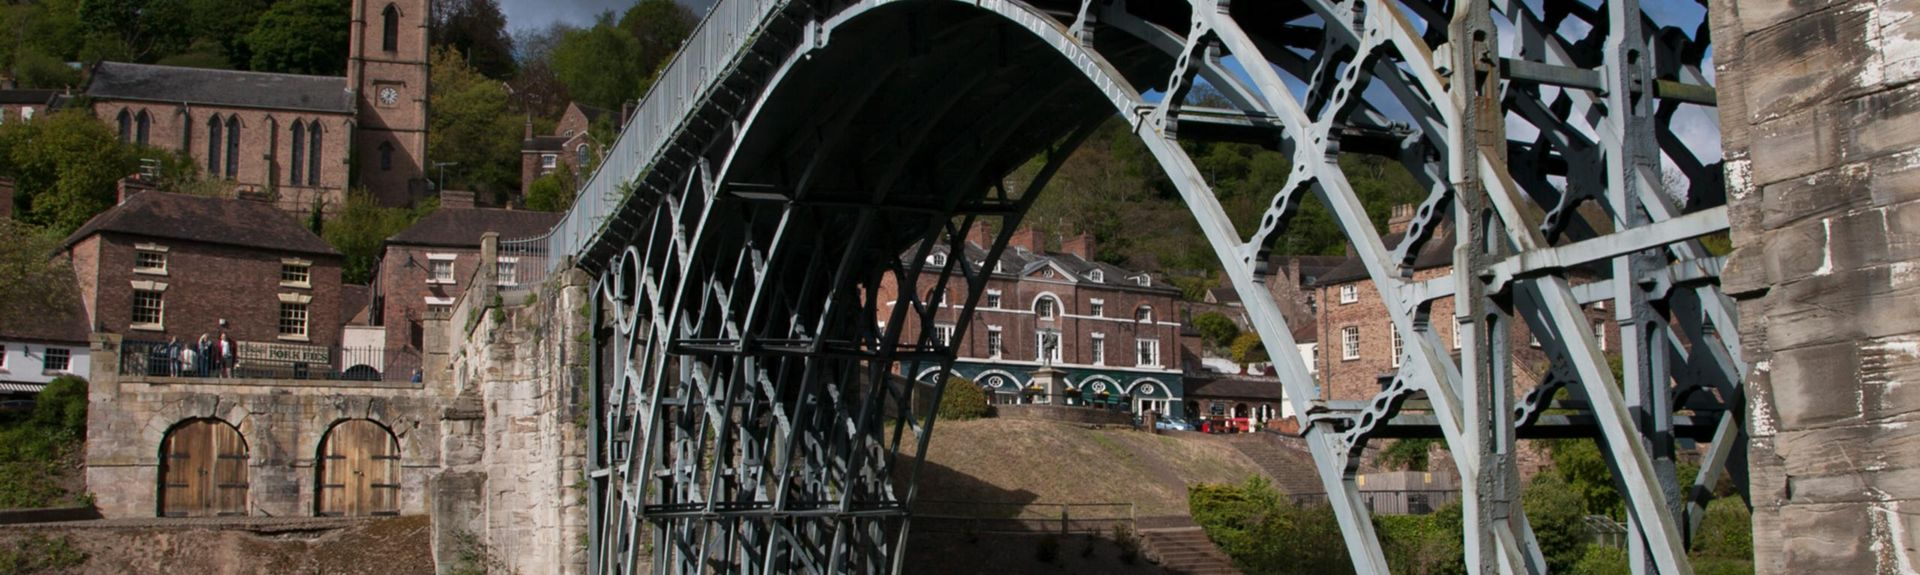 Ironbridge, Angleterre, Royaume-Uni